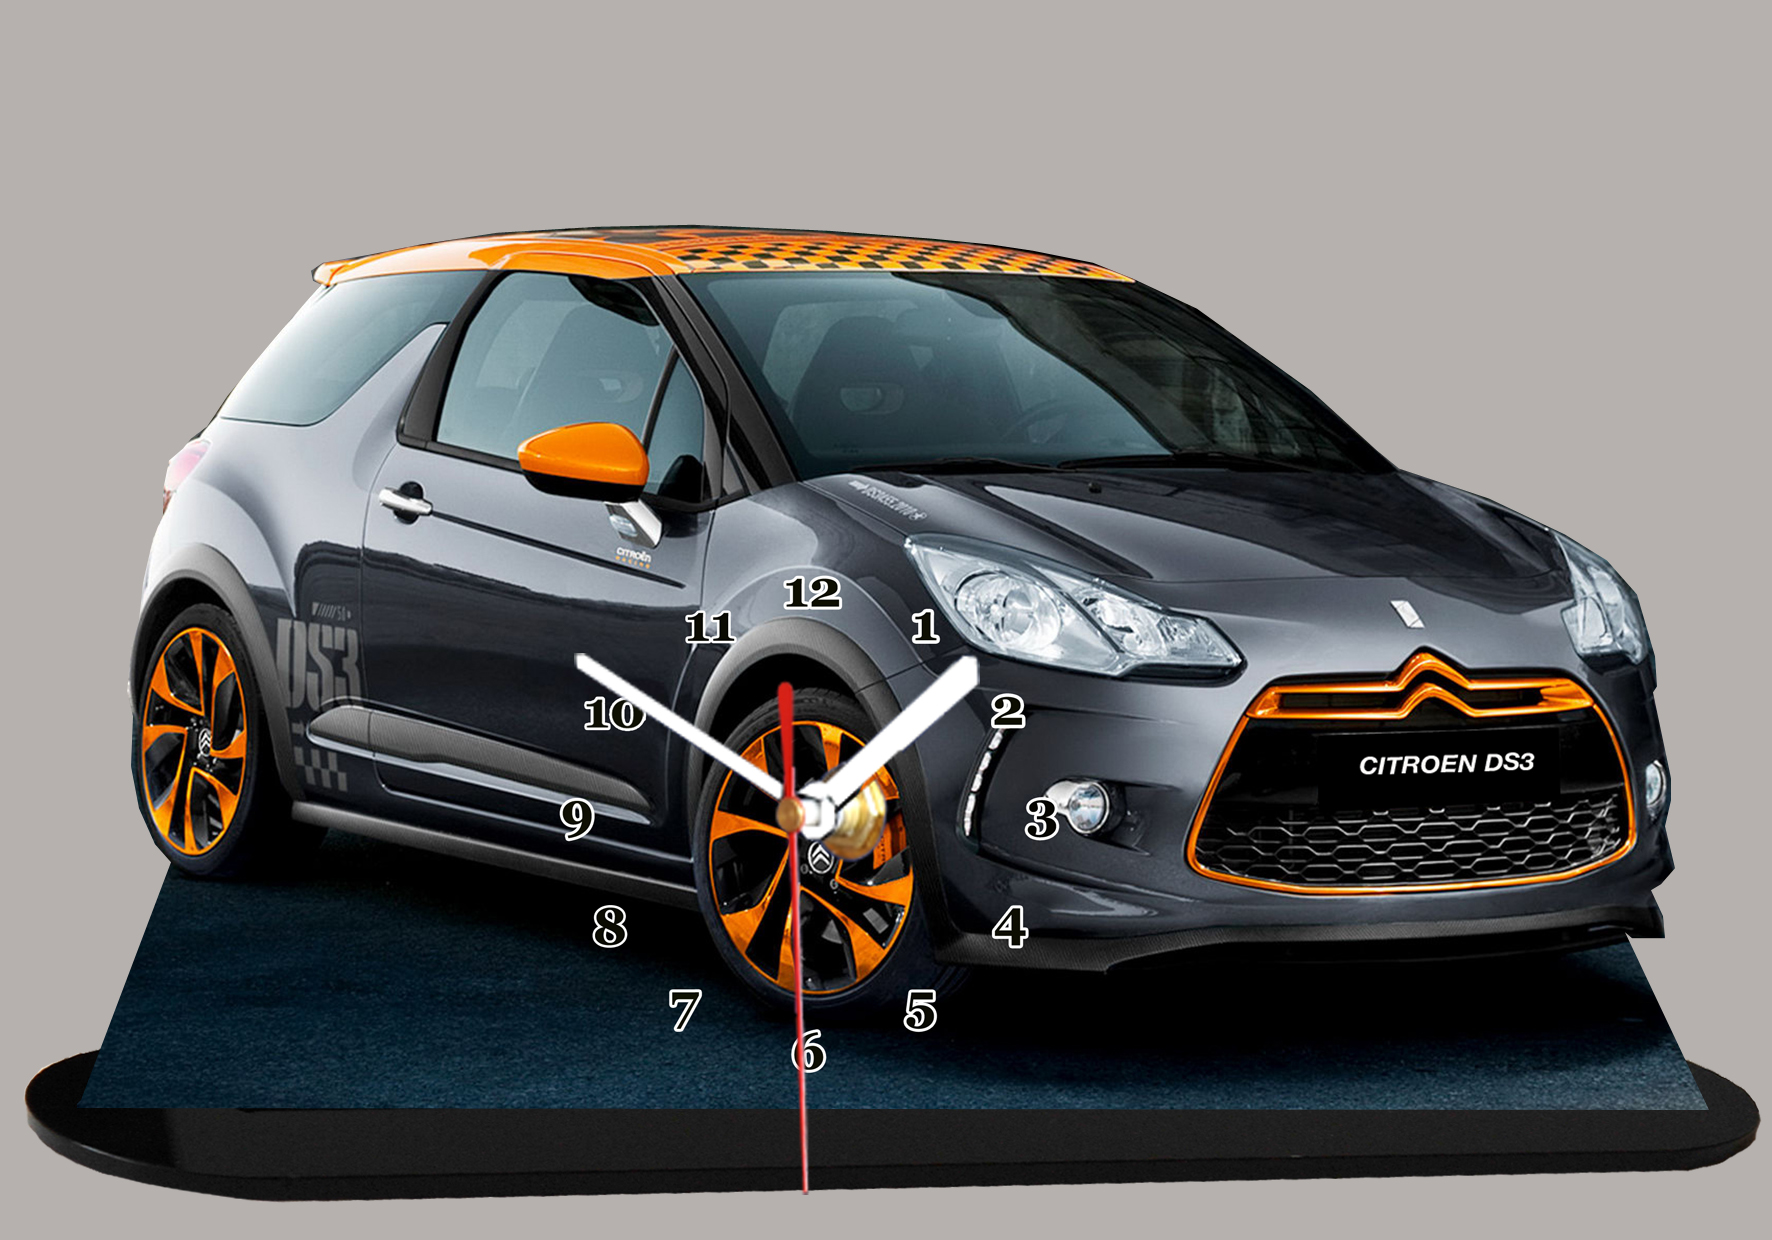 la citroen ds 3 noire et orange en miniature auto horloge. Black Bedroom Furniture Sets. Home Design Ideas